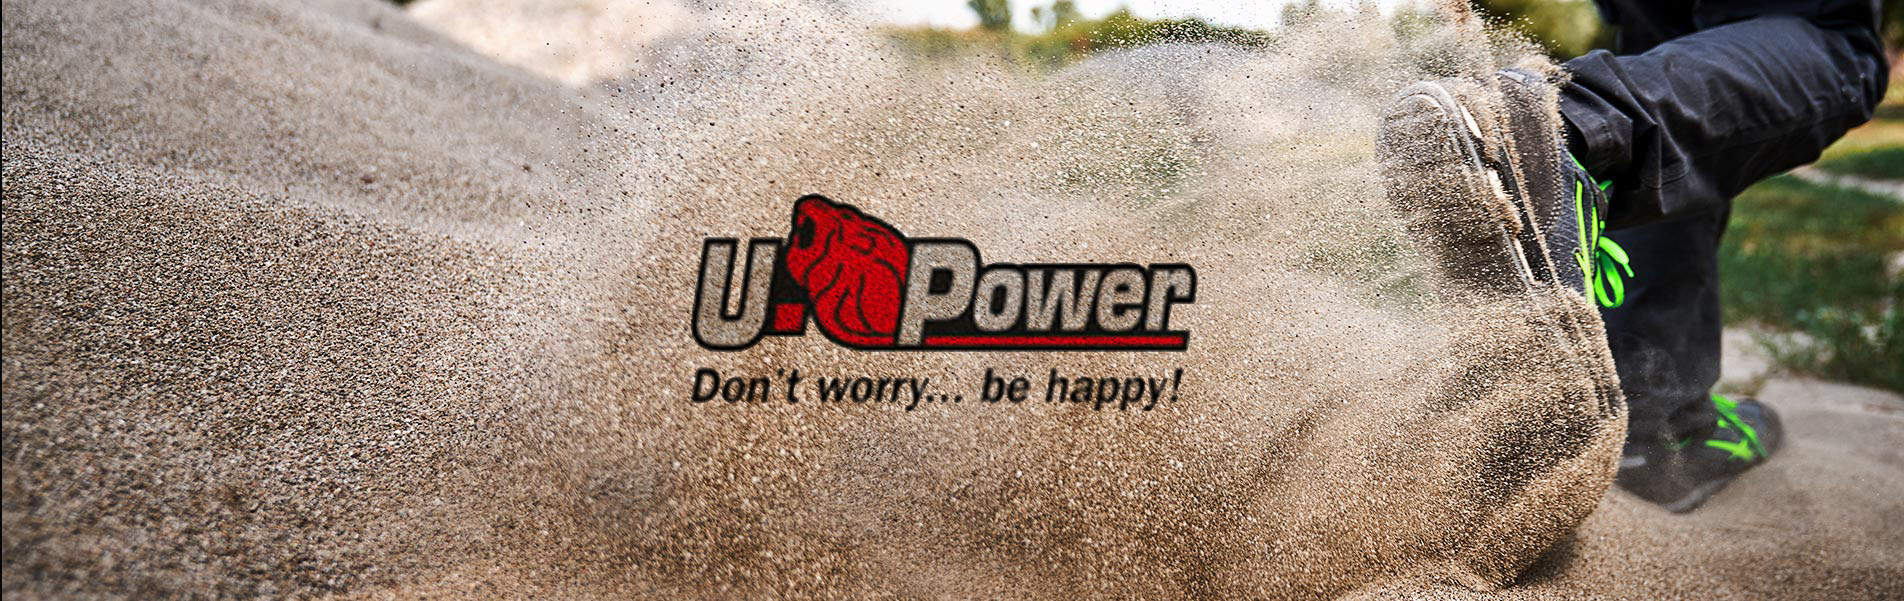 gamme Upower